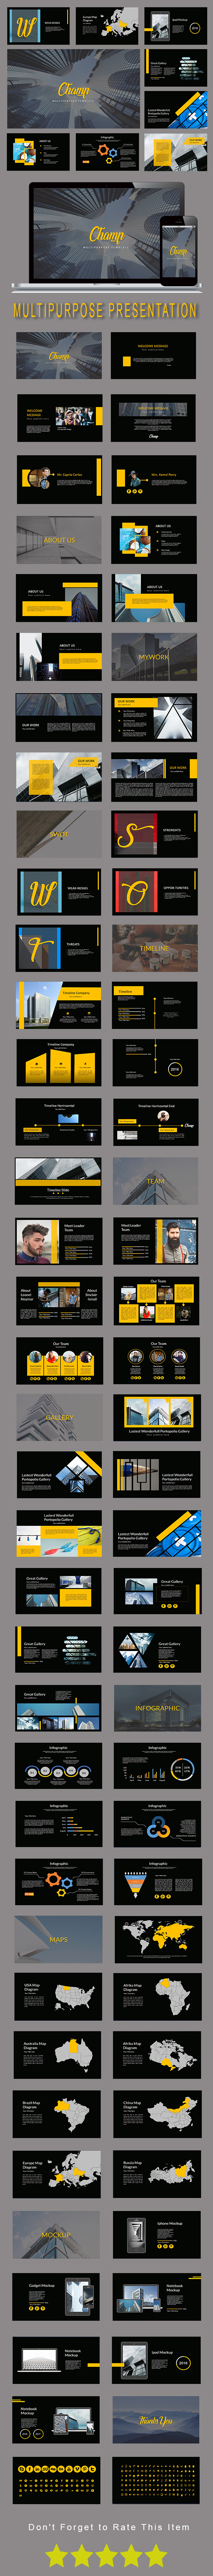 Champ Multipurpose Powerpoint Template - PowerPoint Templates Presentation Templates